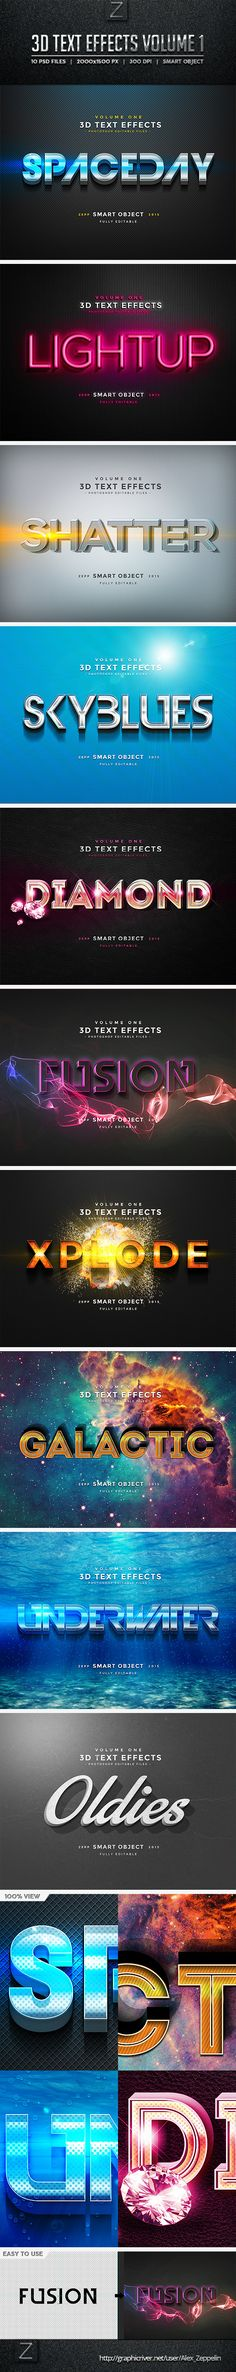 3D Text Effects Vol.1 — Layered PSD #style #3d text • Available here → https://graphicriver.net/item/3d-text-effects-vol1/10156254?ref=pxcr